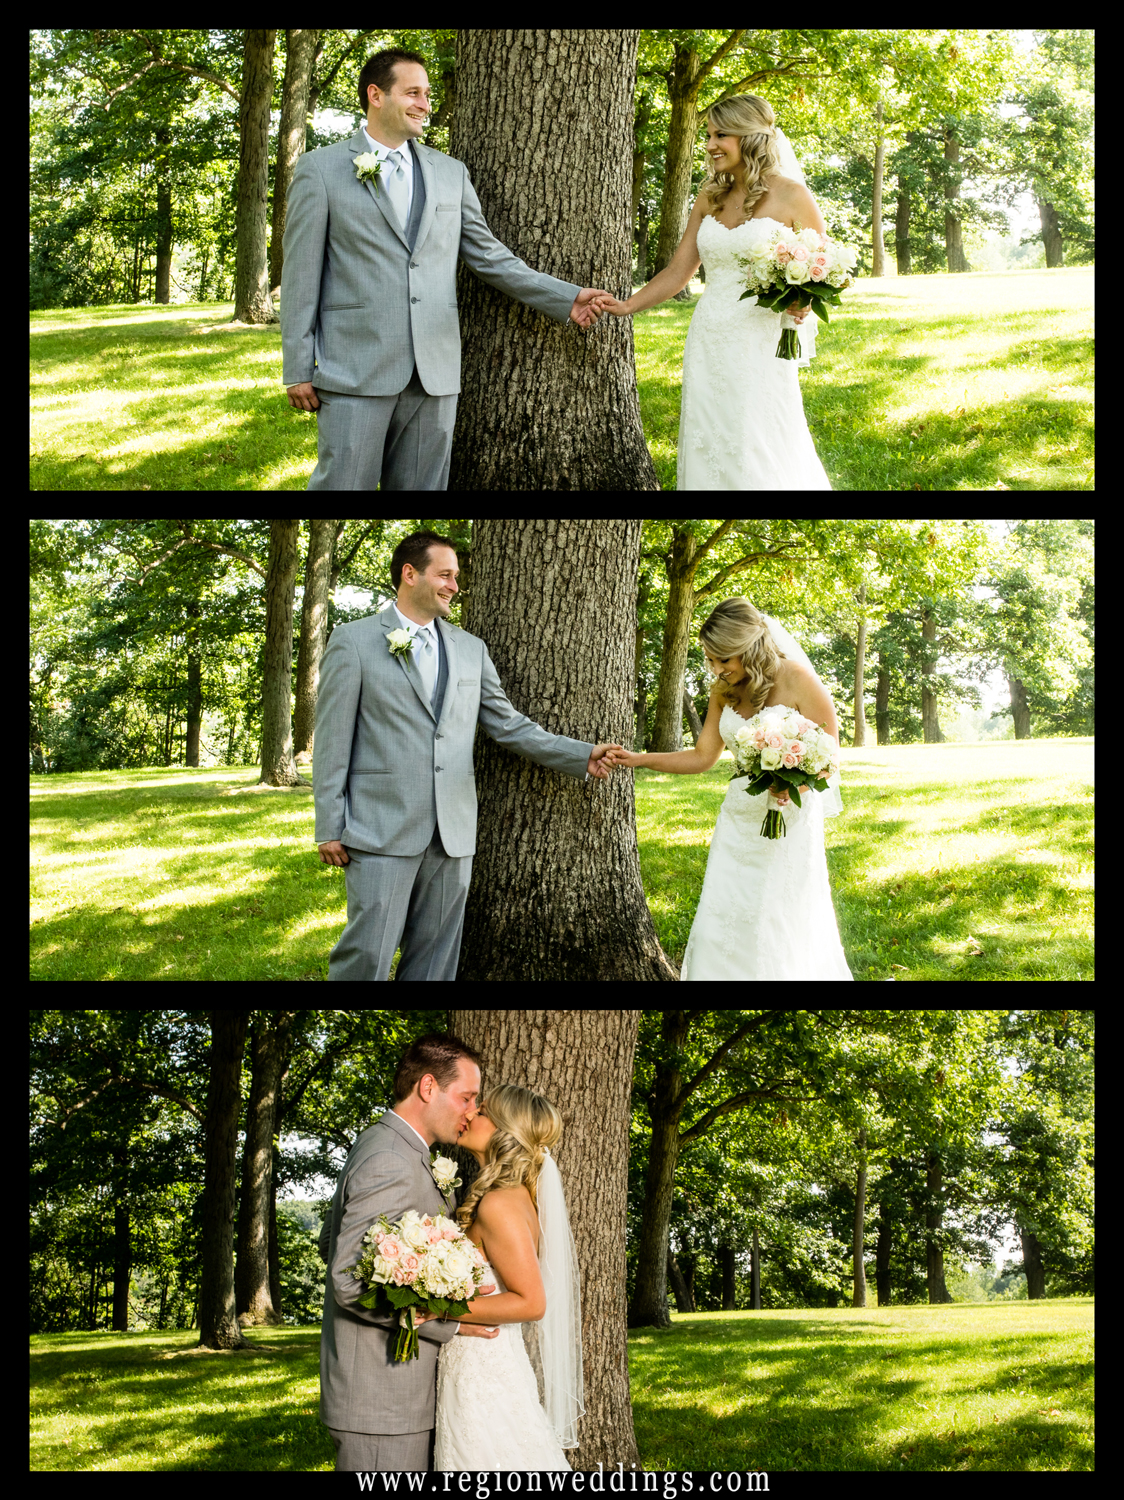 A montage of images from an bride and groom's first look at Lemon Lake Park.